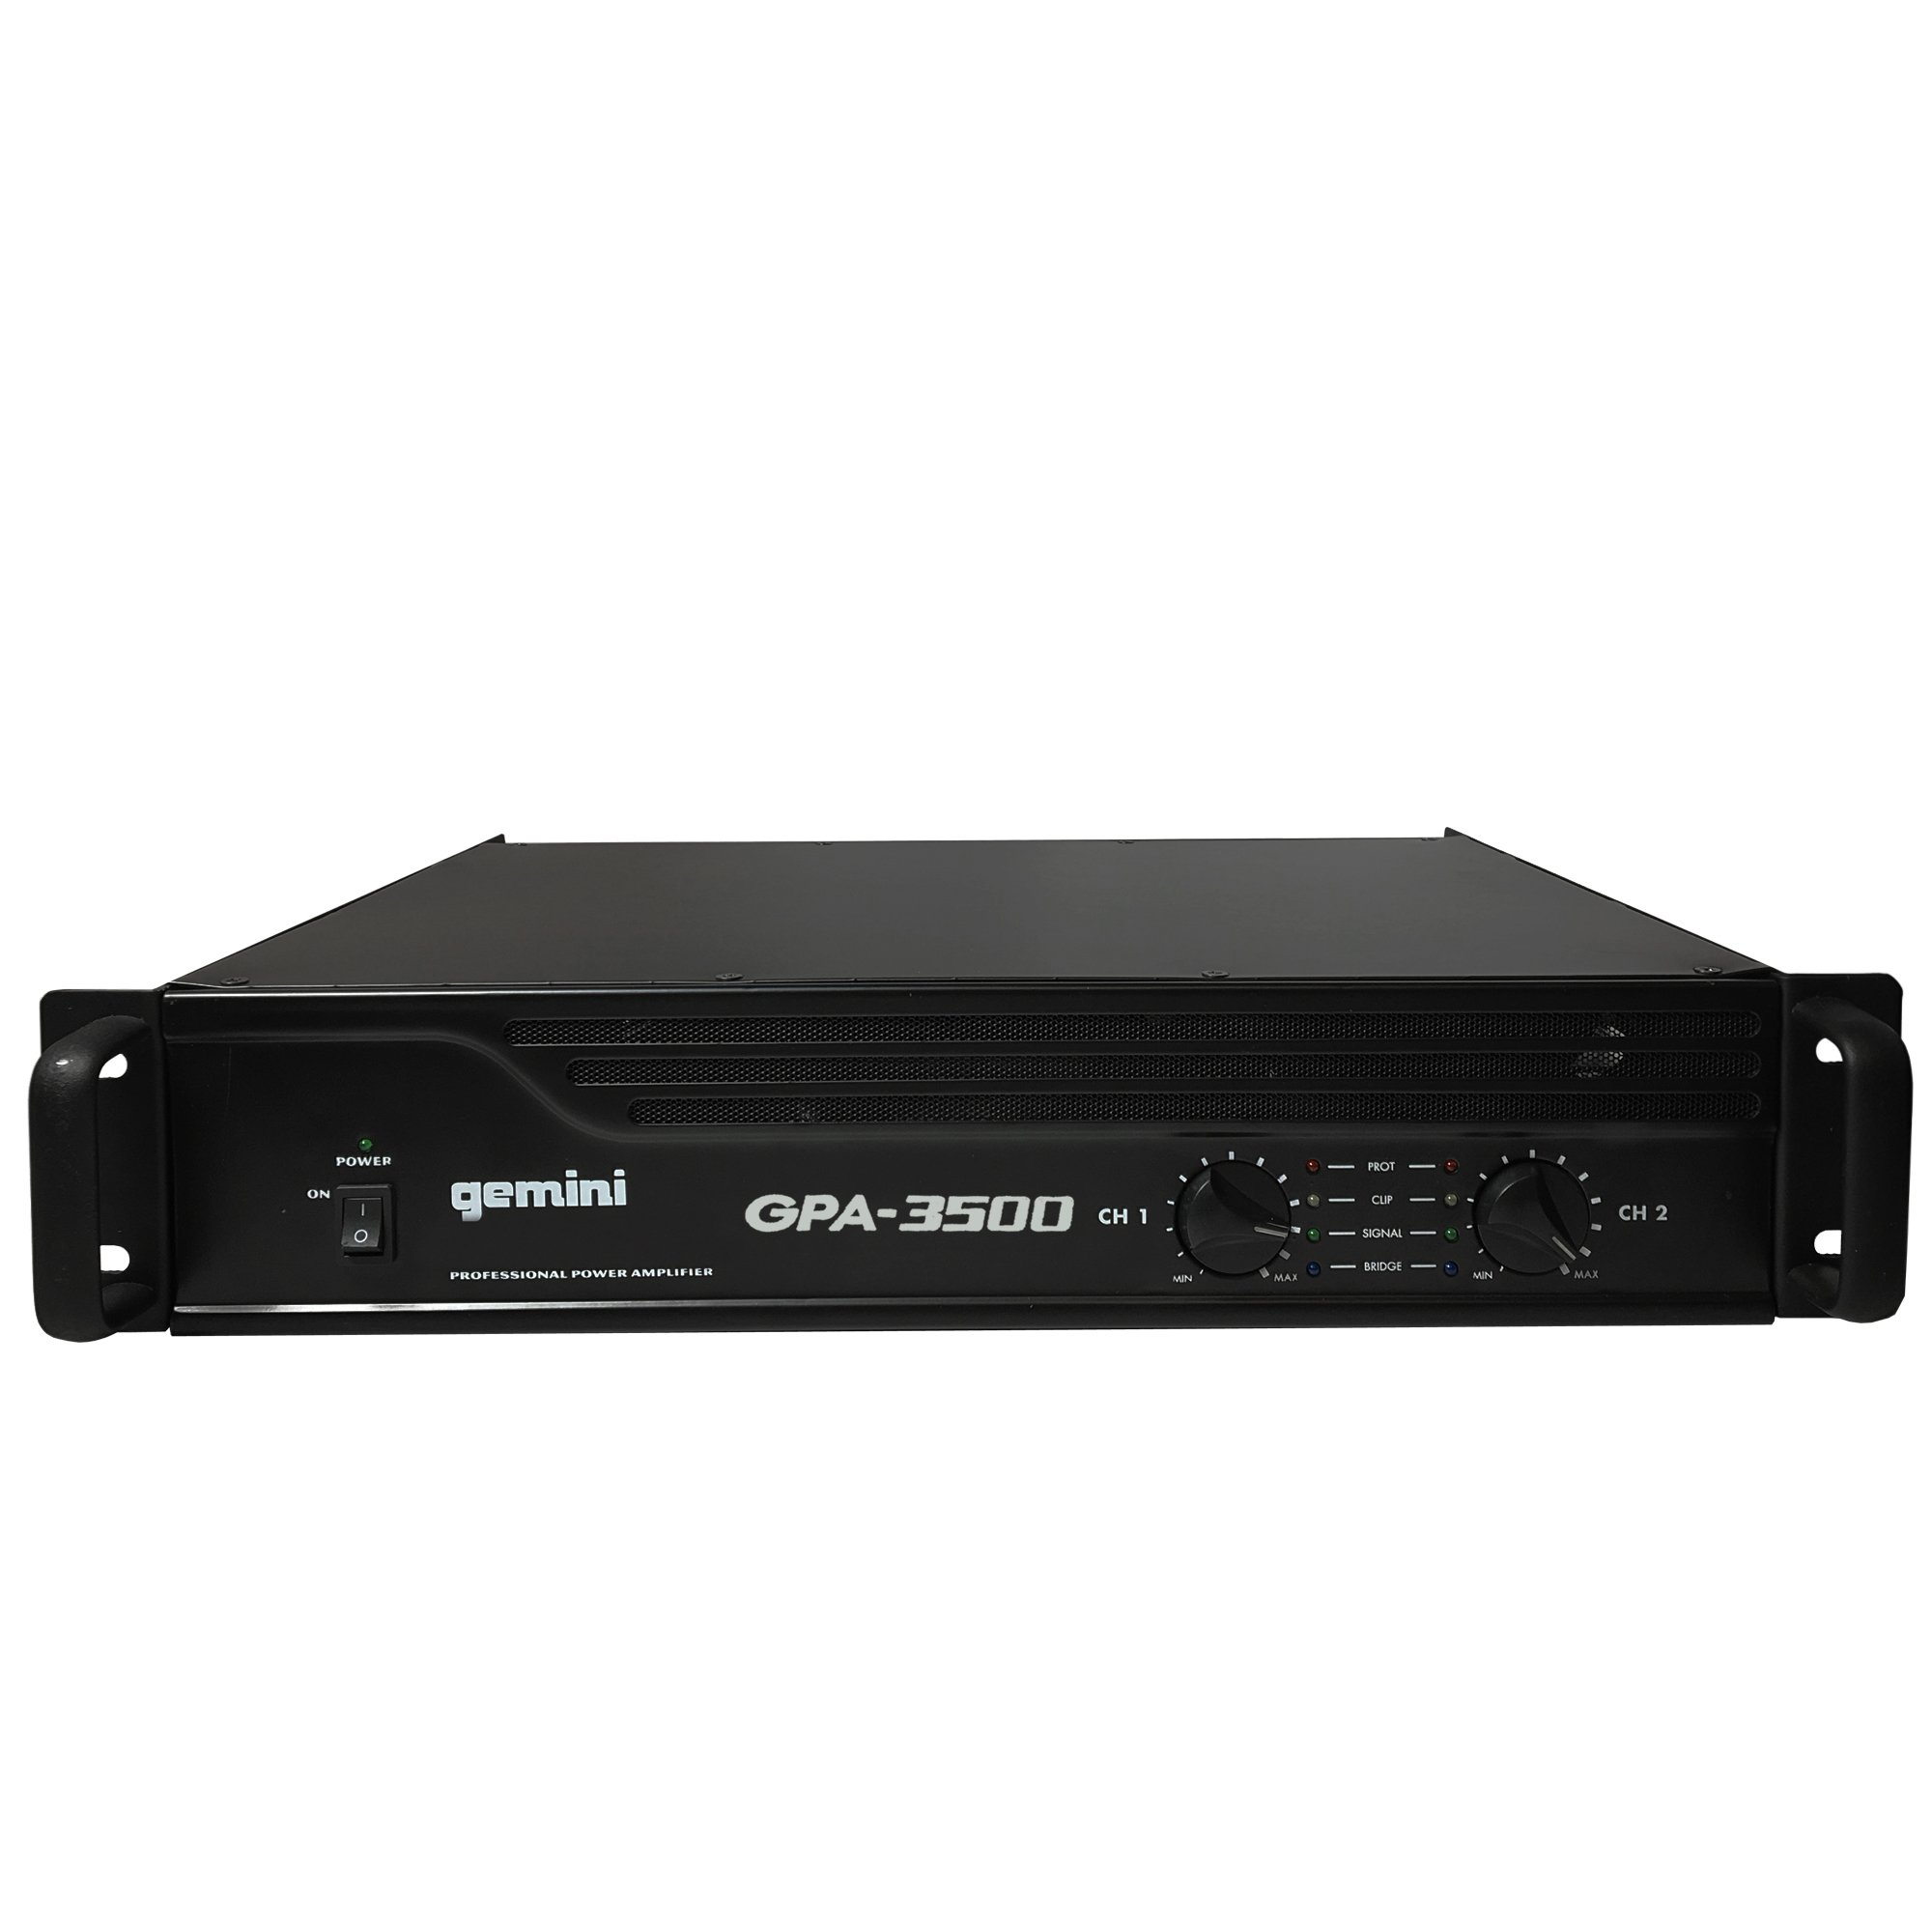 Gemini GPA-3500 3000W Professional DJ Power Amplifier